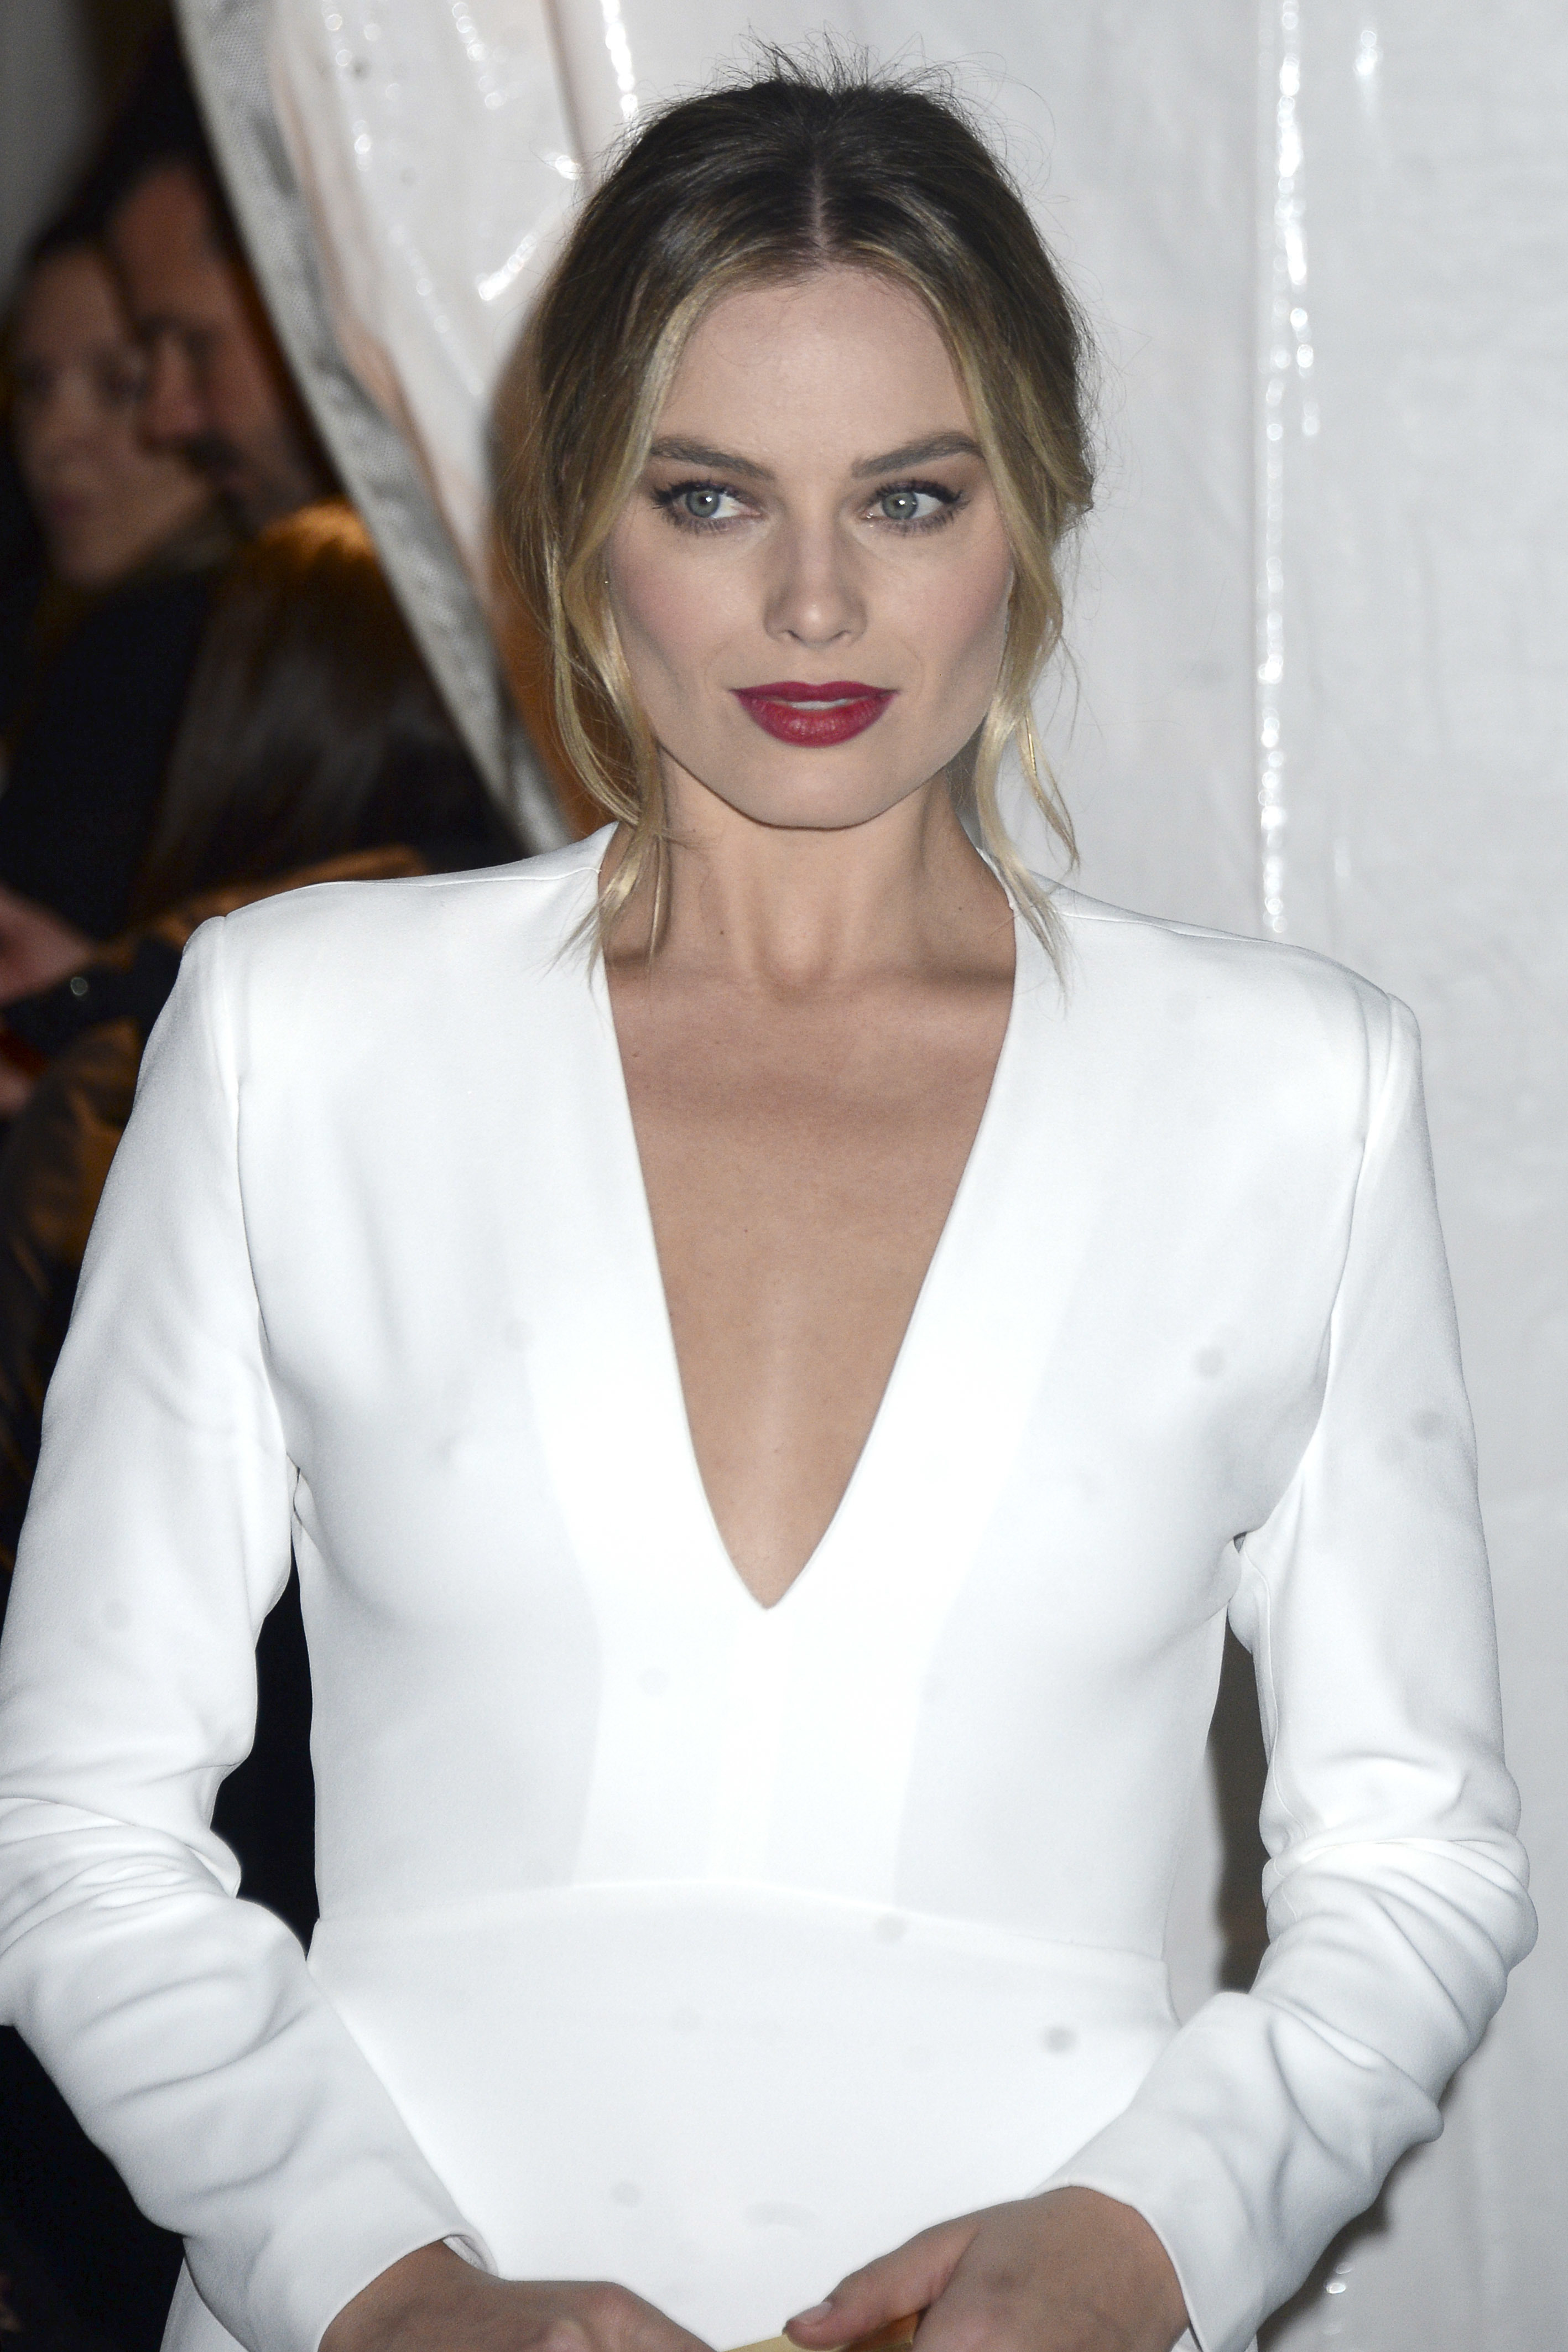 Margot Robbie attends the 26th Annual Gotham Independent Film Awards in New York City on Nov. 28, 2016.